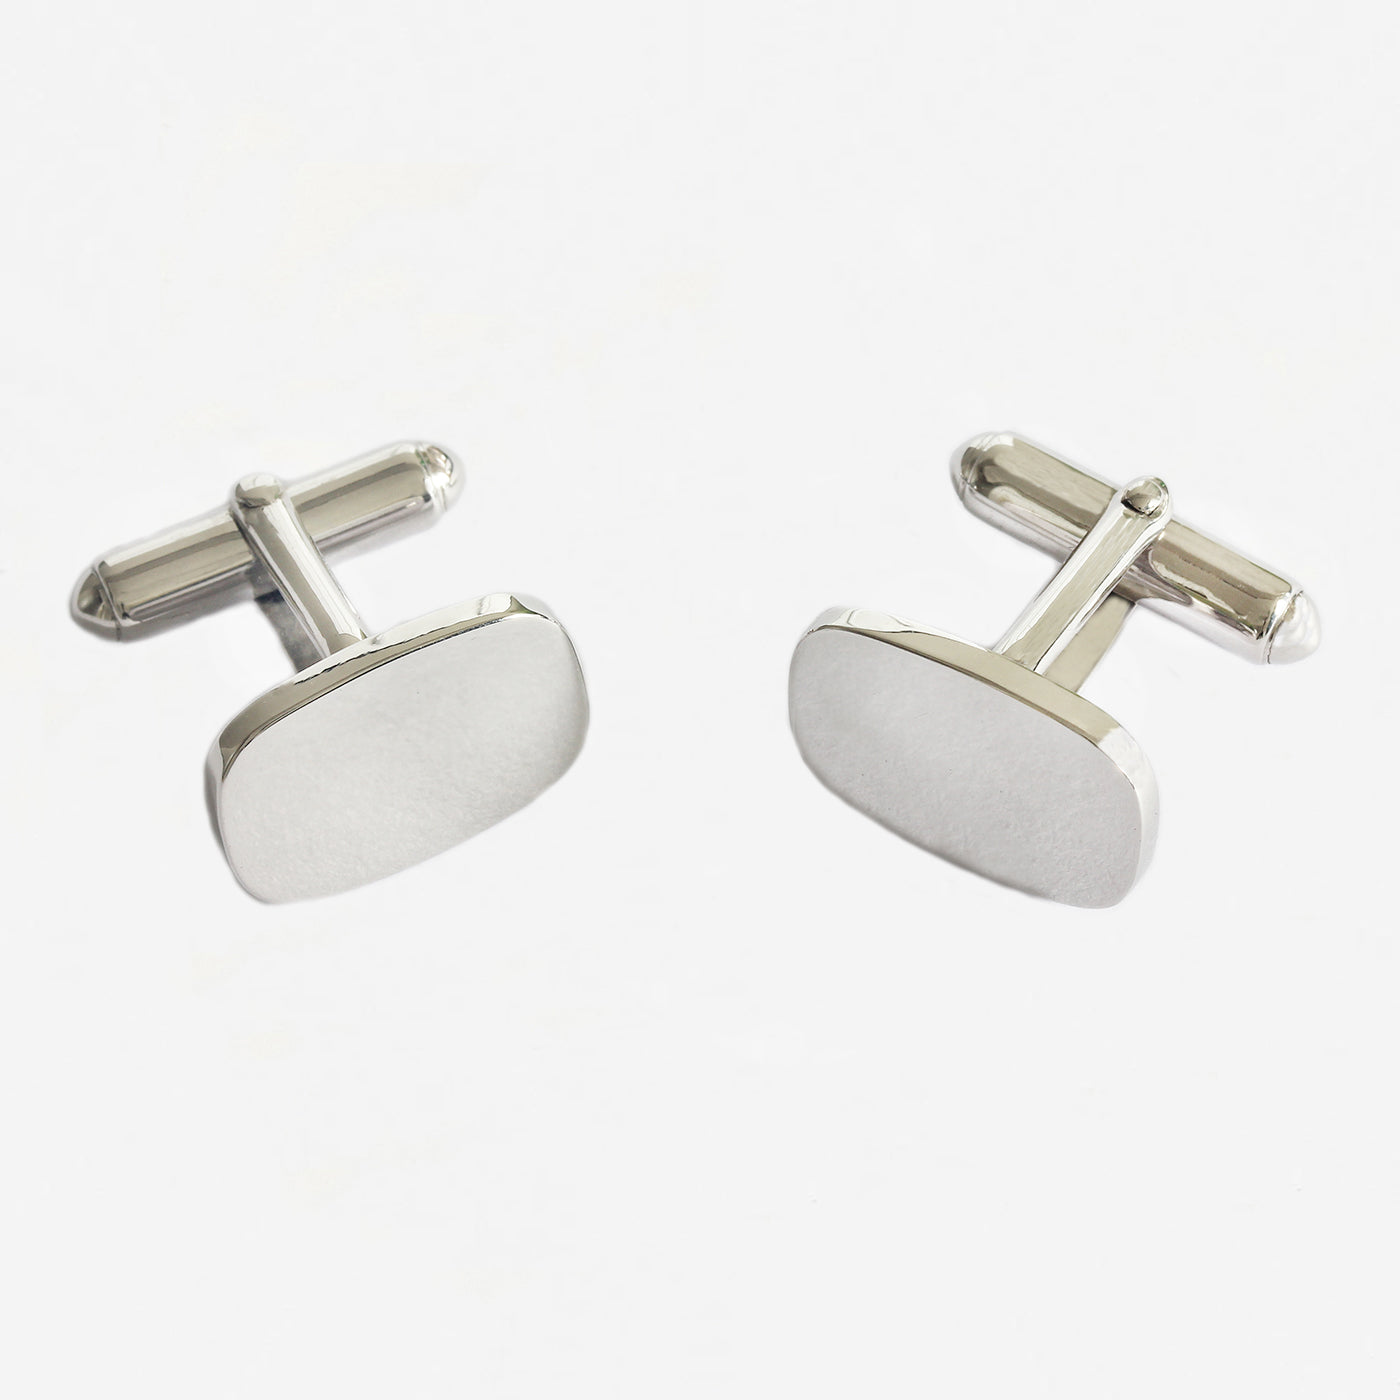 a pair of sterling silver plain cushion shaped cufflinks with bar connectors